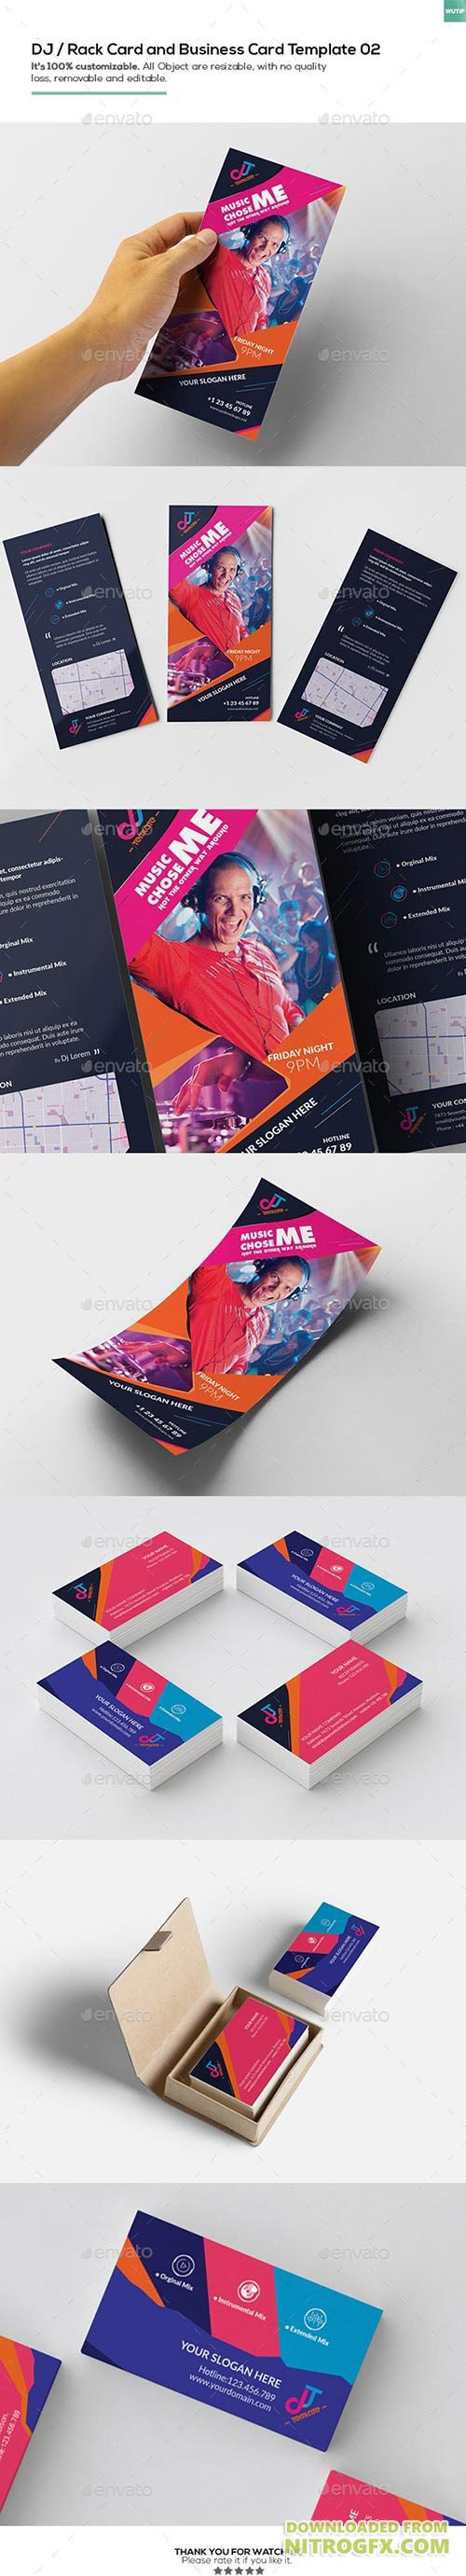 DJ / Rack Card and Business Card Template 02 16207260